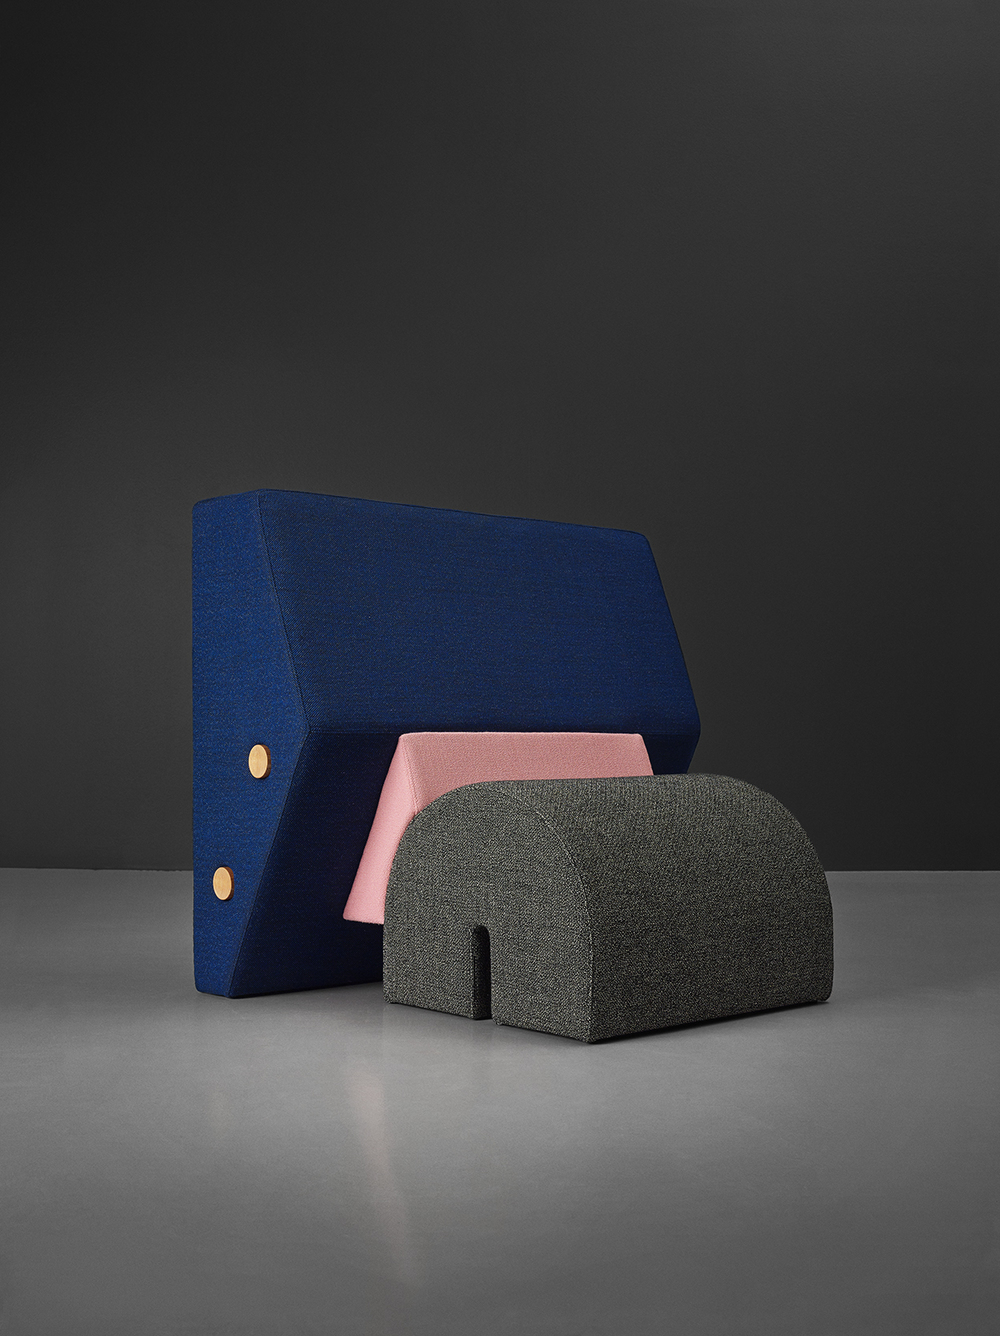 Keystone / OS+OOS / Salone del Mobile / London Design Journal